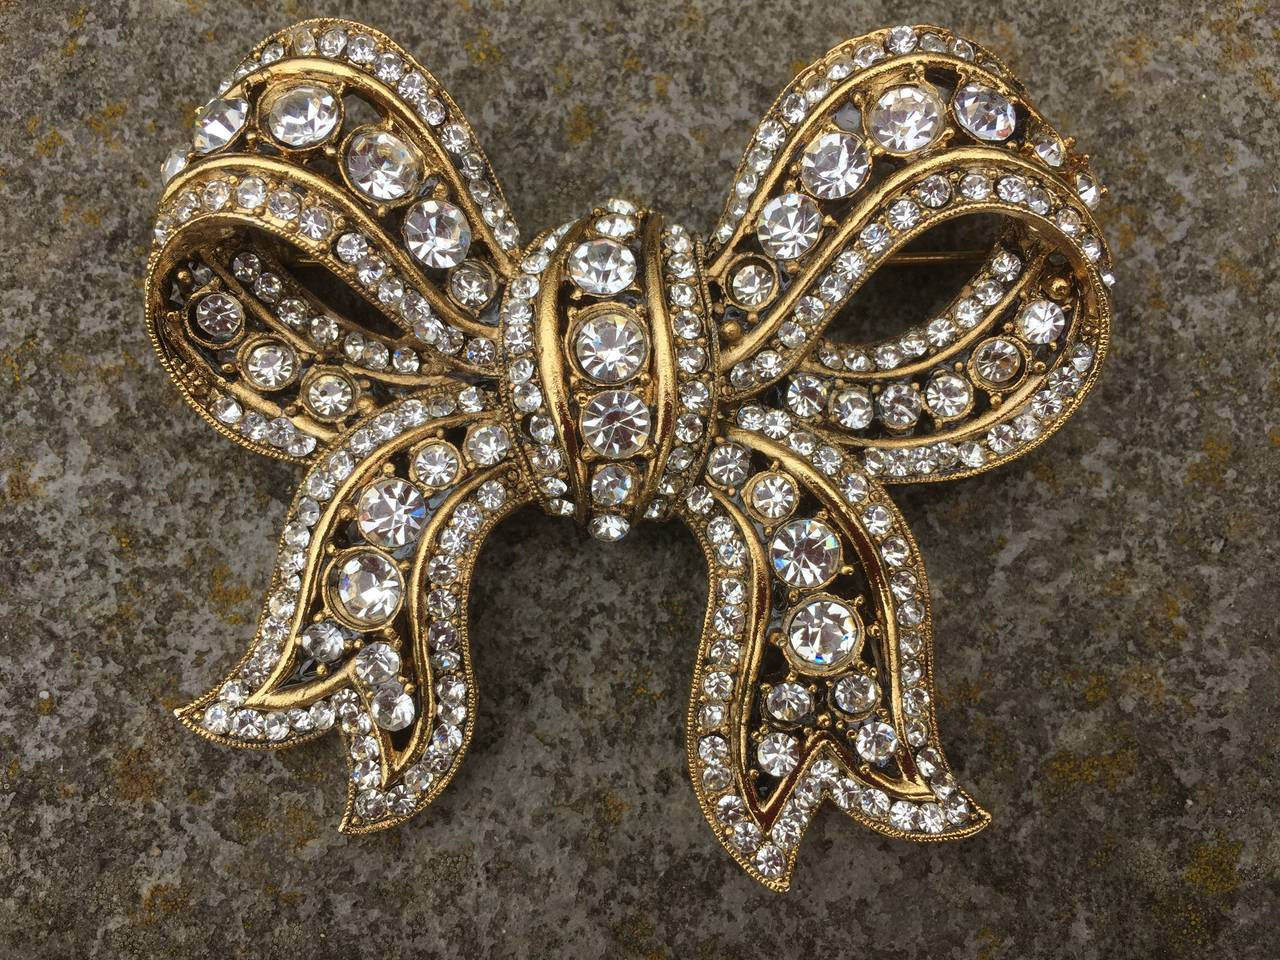 Serbin large gold and crystal bow brooch pin 1985 for sale at 1stdibs